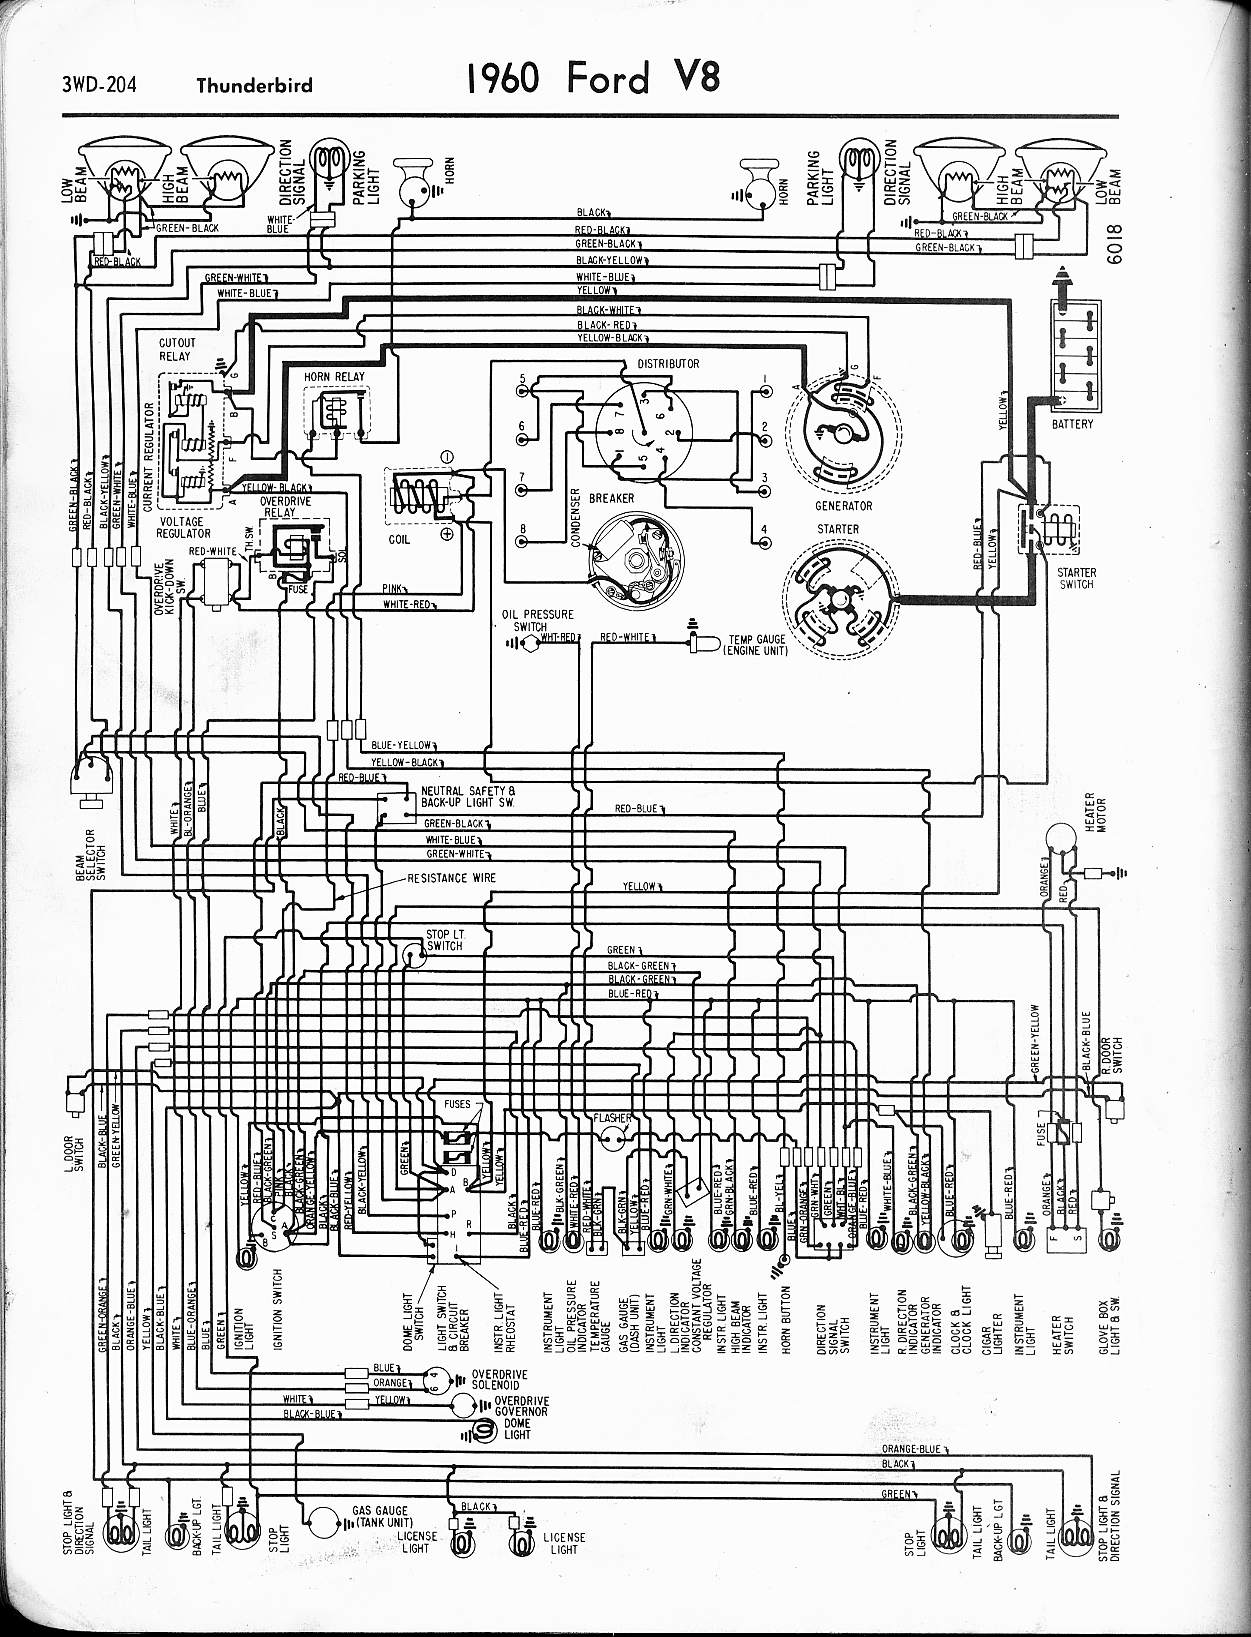 1960 ford wiring diagram wiring diagrams favorites 57 65 ford wiring diagrams 1960 ford ranchero wiring diagram 1960 ford wiring diagram